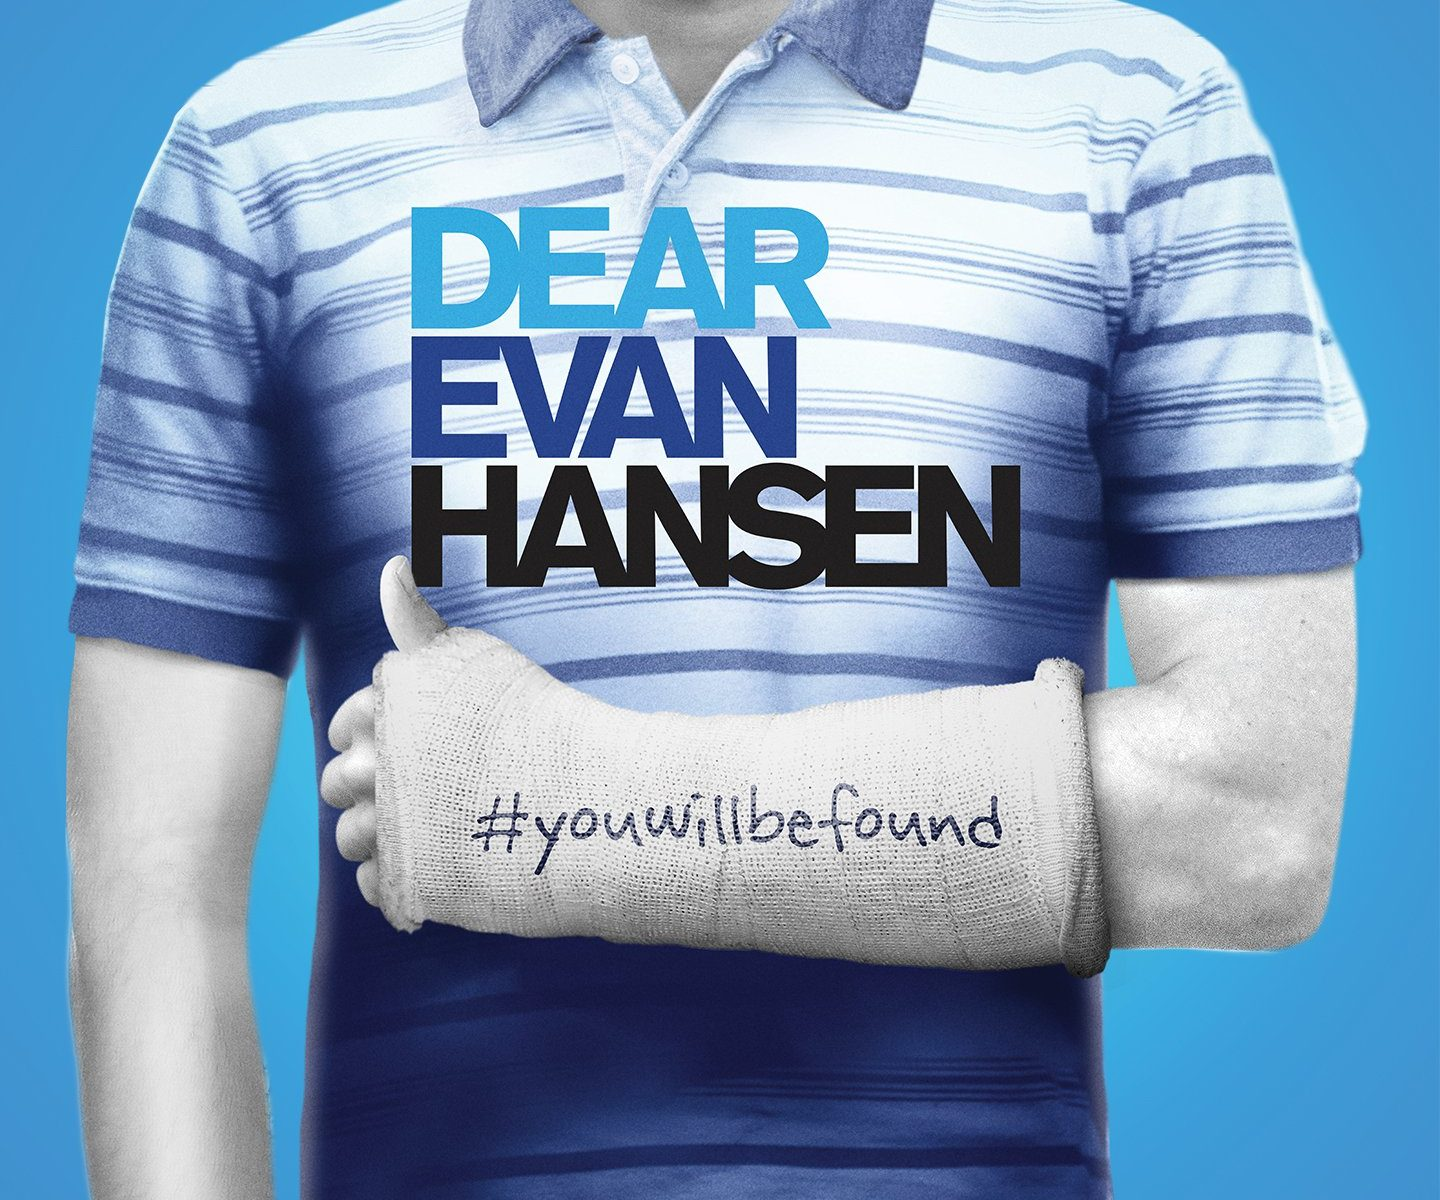 Dear Evan Hansen at The Ahmanson Theatre